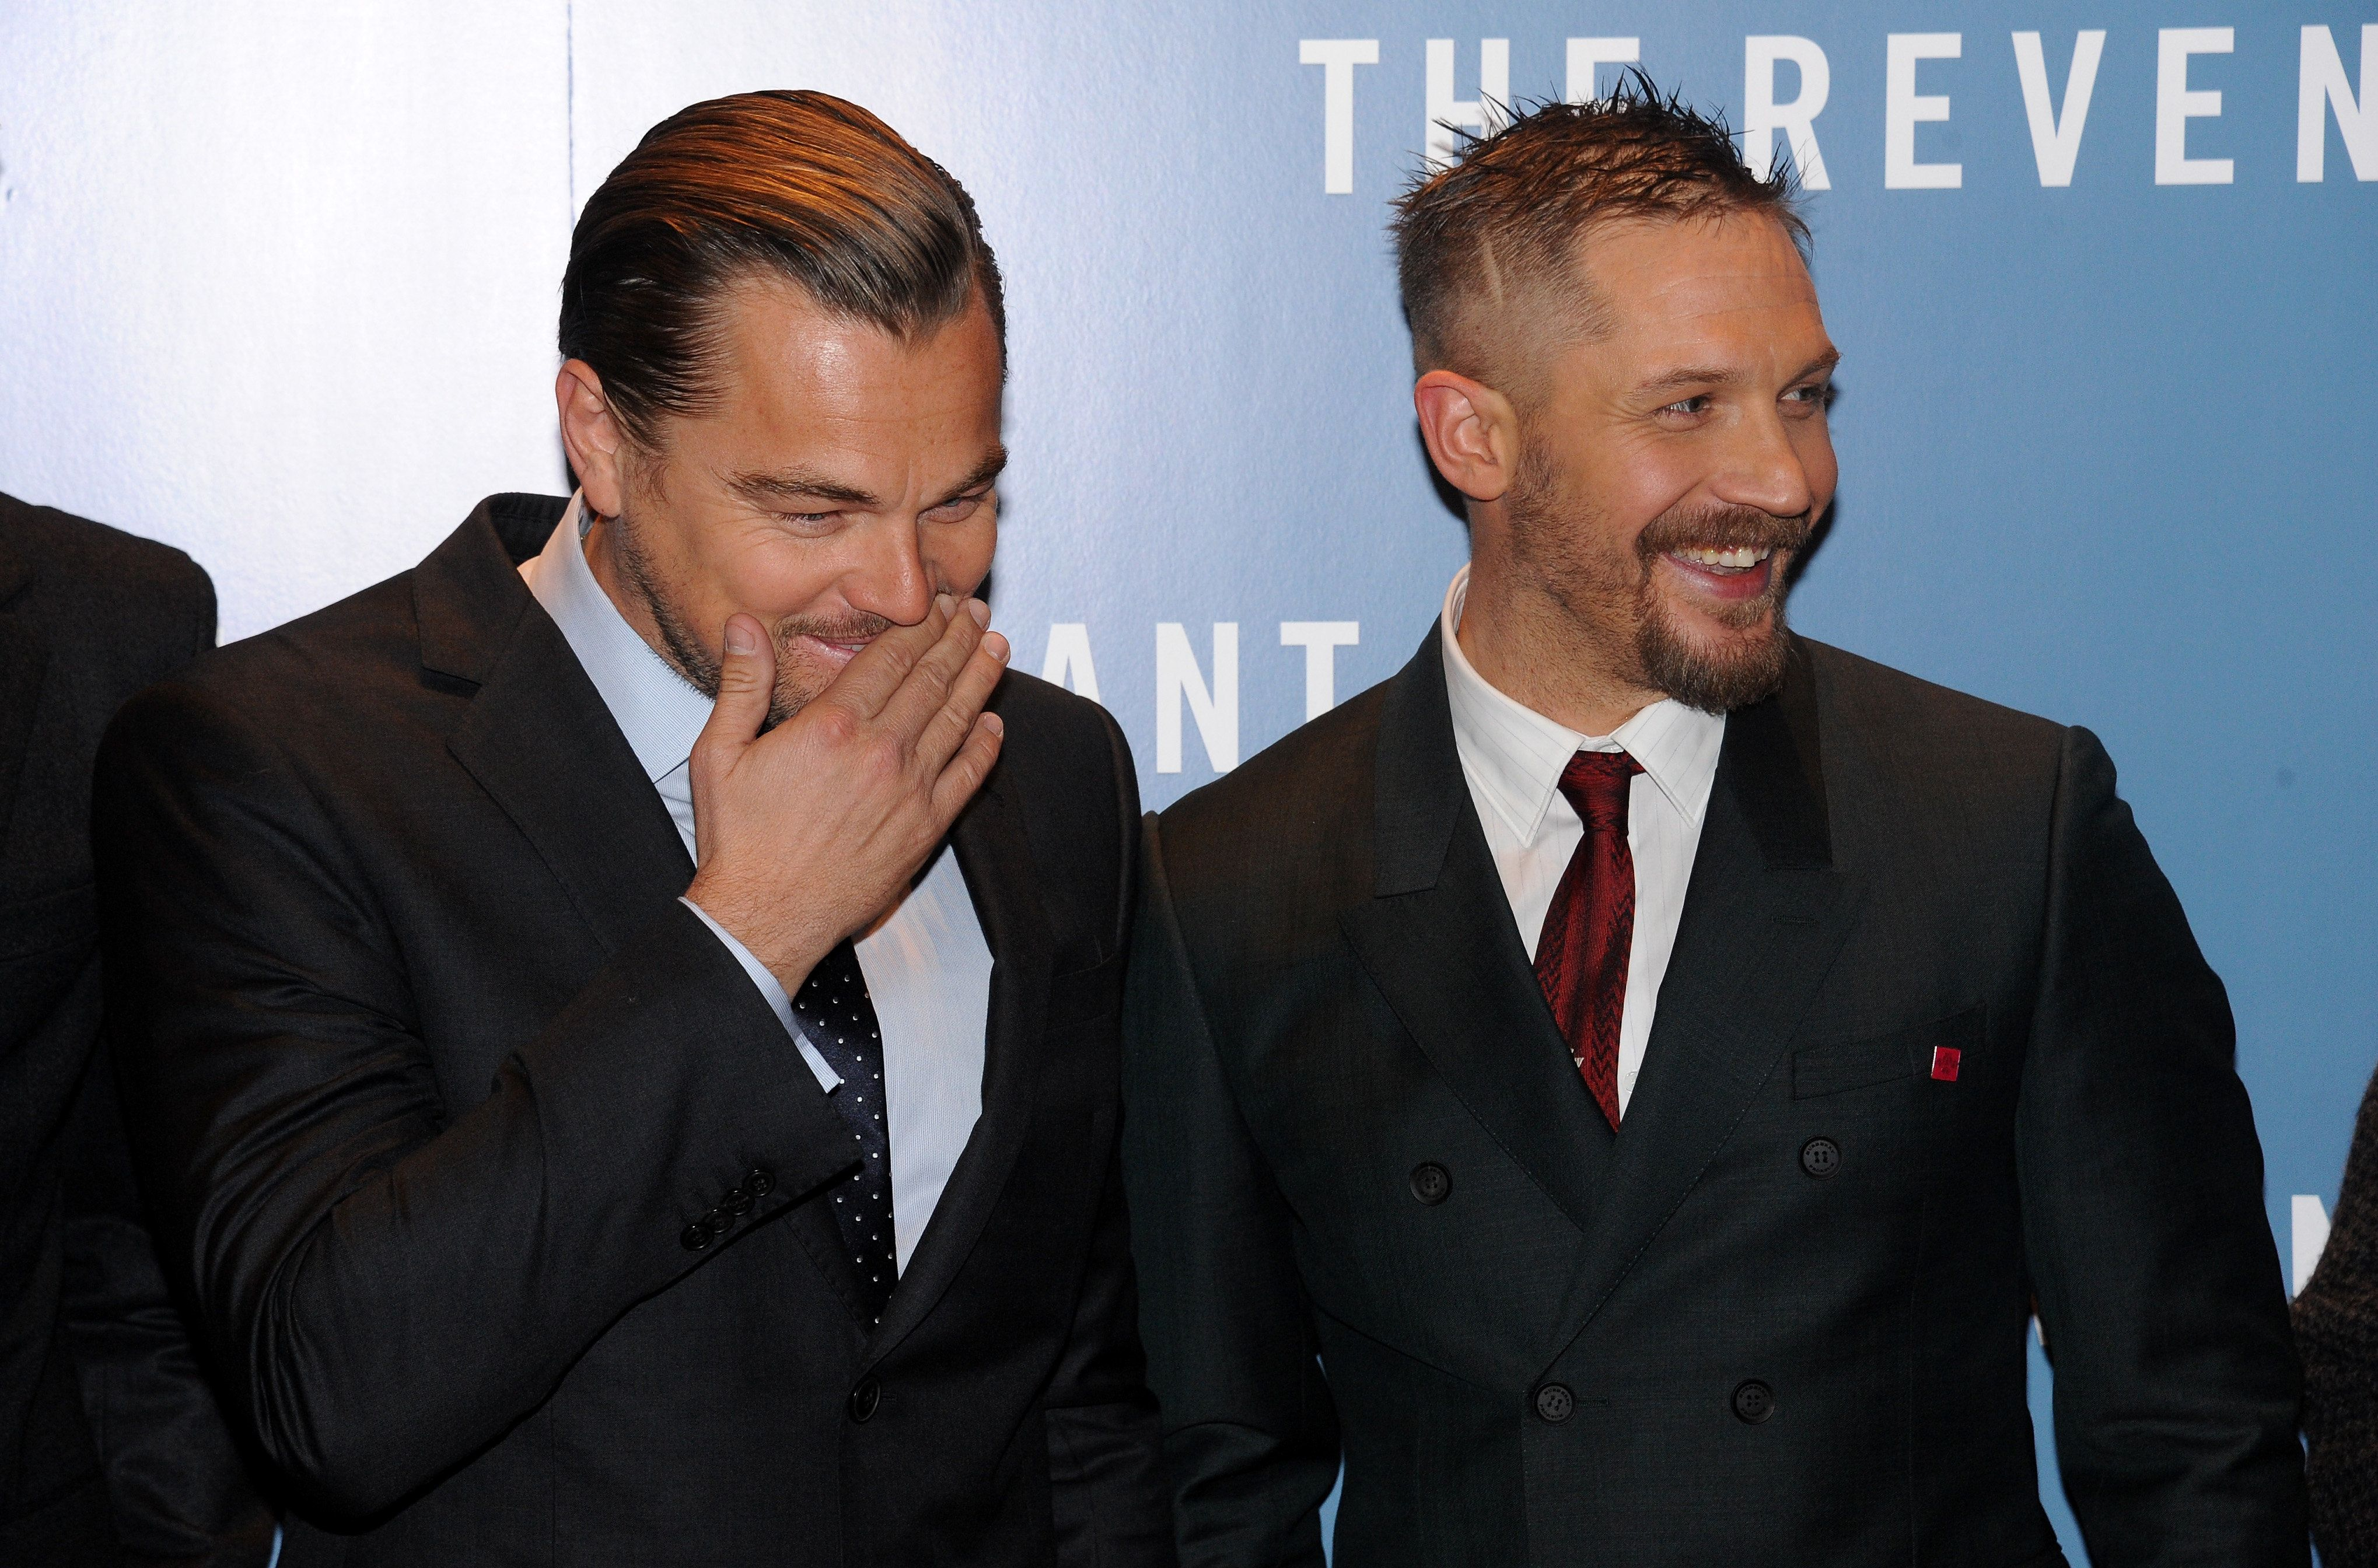 Tom Hardy Lost A Bet To Leonardo DiCaprio And Now Has To Get The Worst